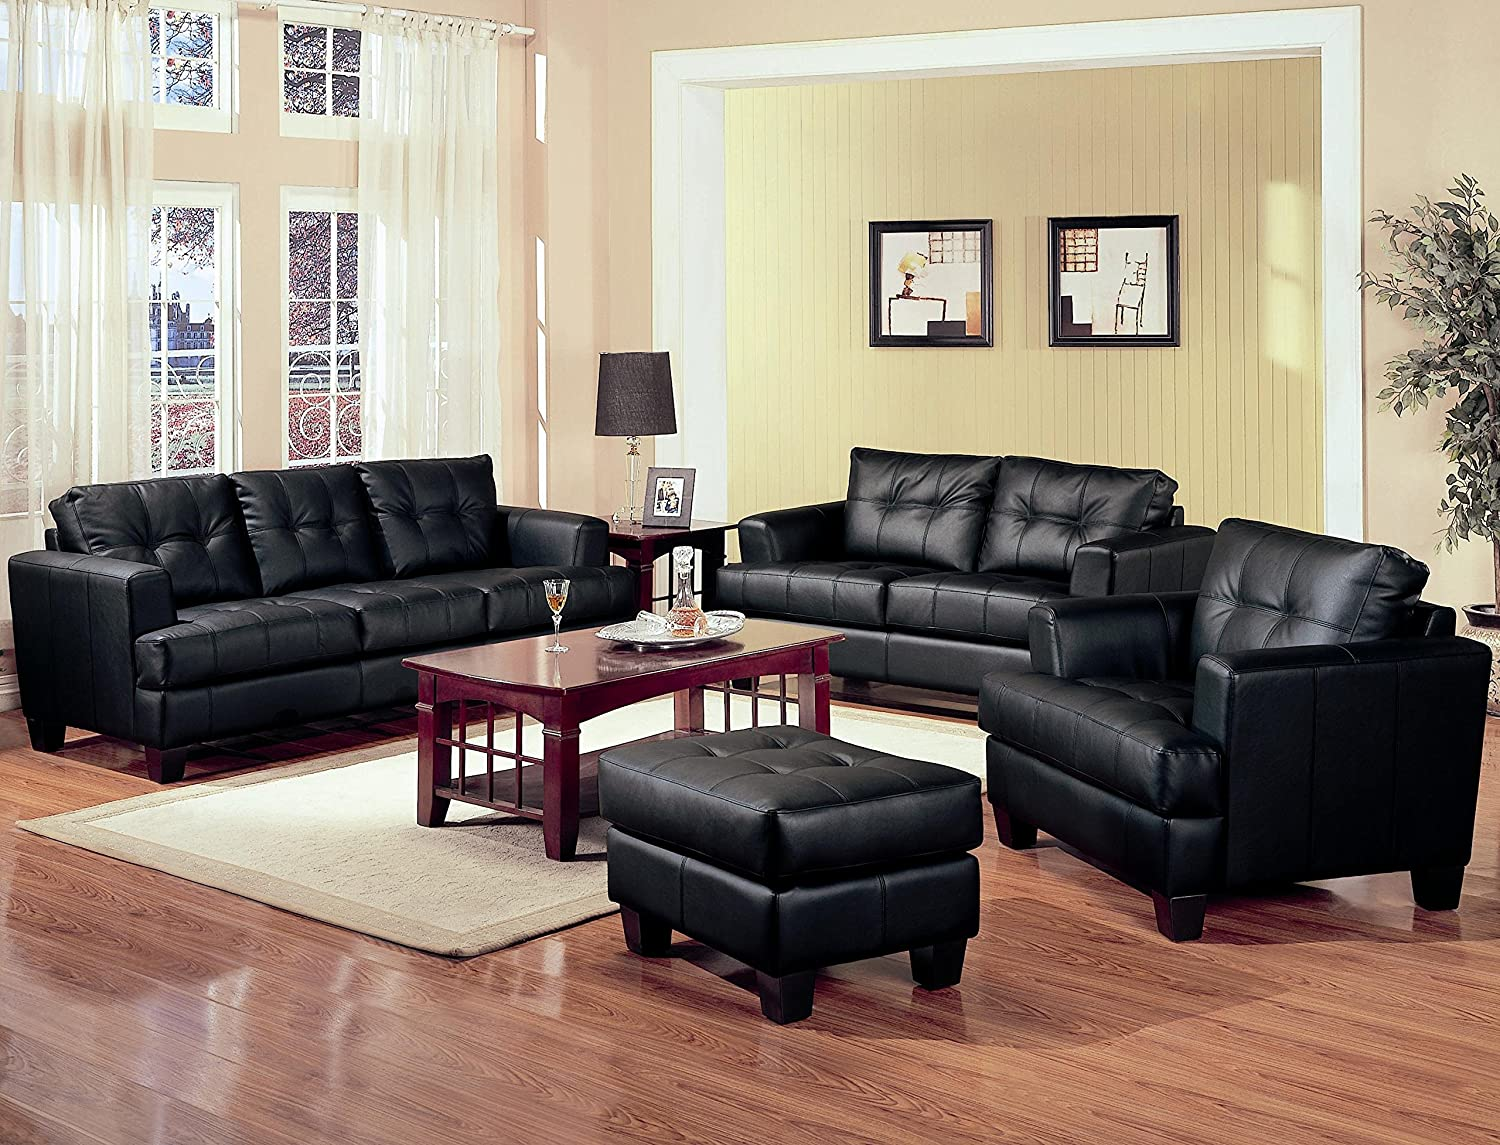 Amazon com coaster home furnishings samuel living room set with sofa love seat chair and ottoman in black premium bonded leather kitchen dining